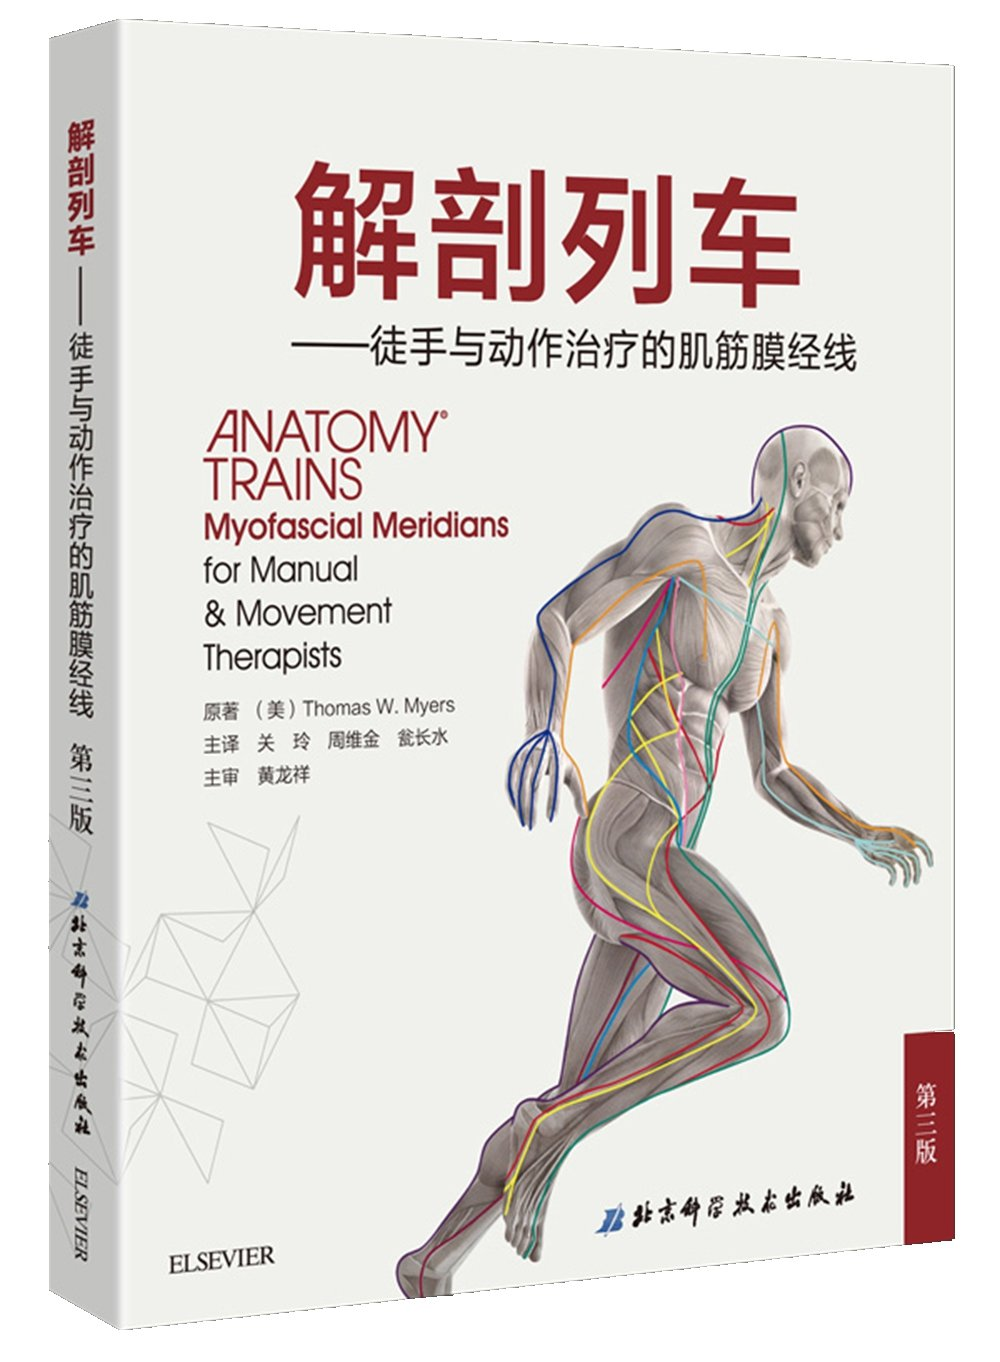 Anatomy Trains - unarmed and myofascial meridian therapy movement ...